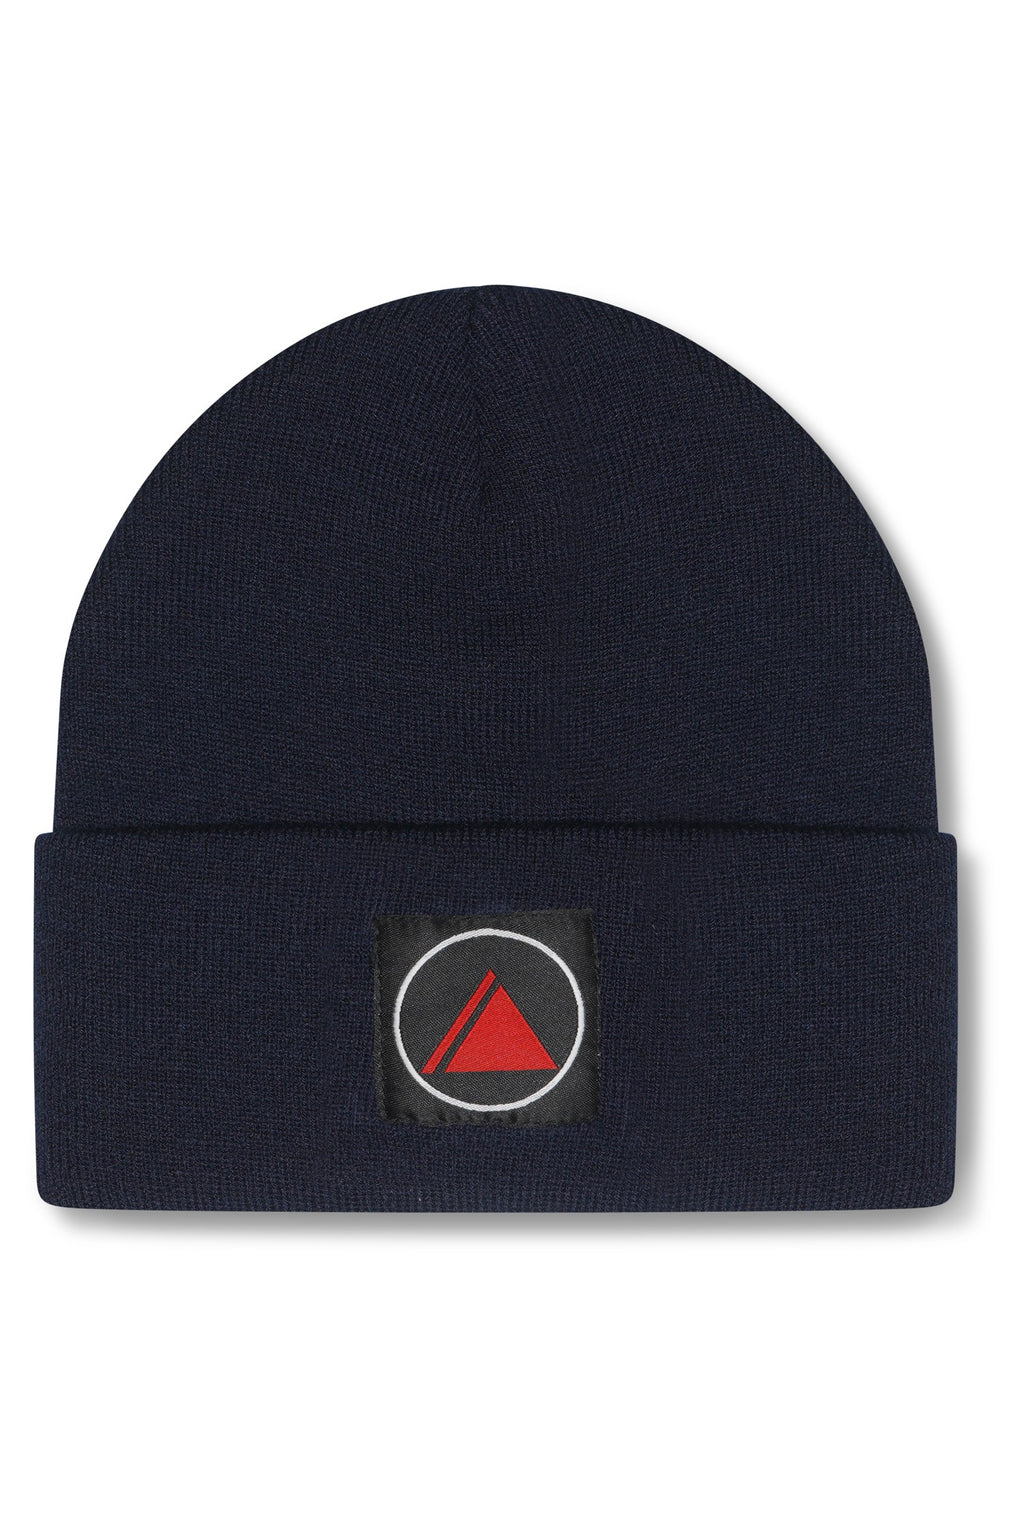 BLACK LABEL AASPIRE HAT (NAVY BLUE)